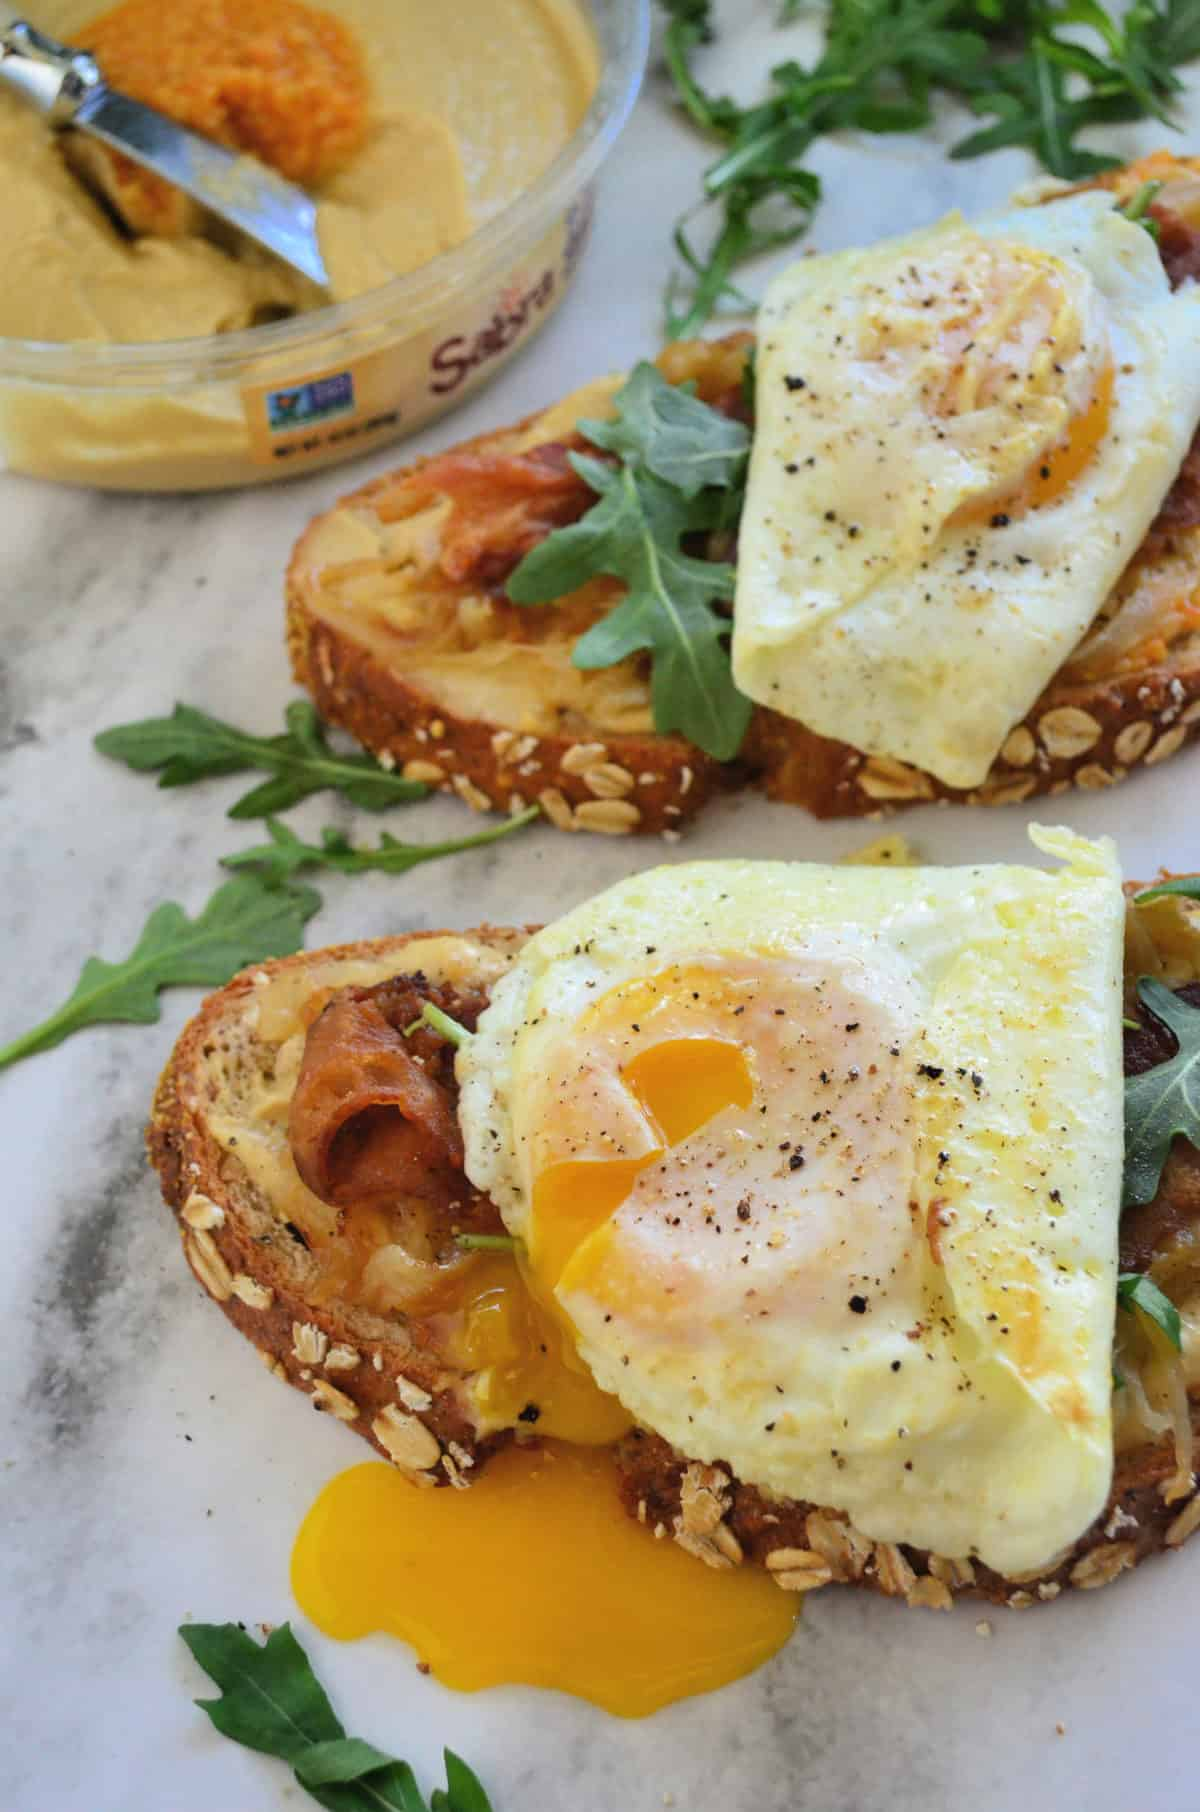 bread topped with hummus, bacon, over easy eggs oozing yolk, and arugula on platter.